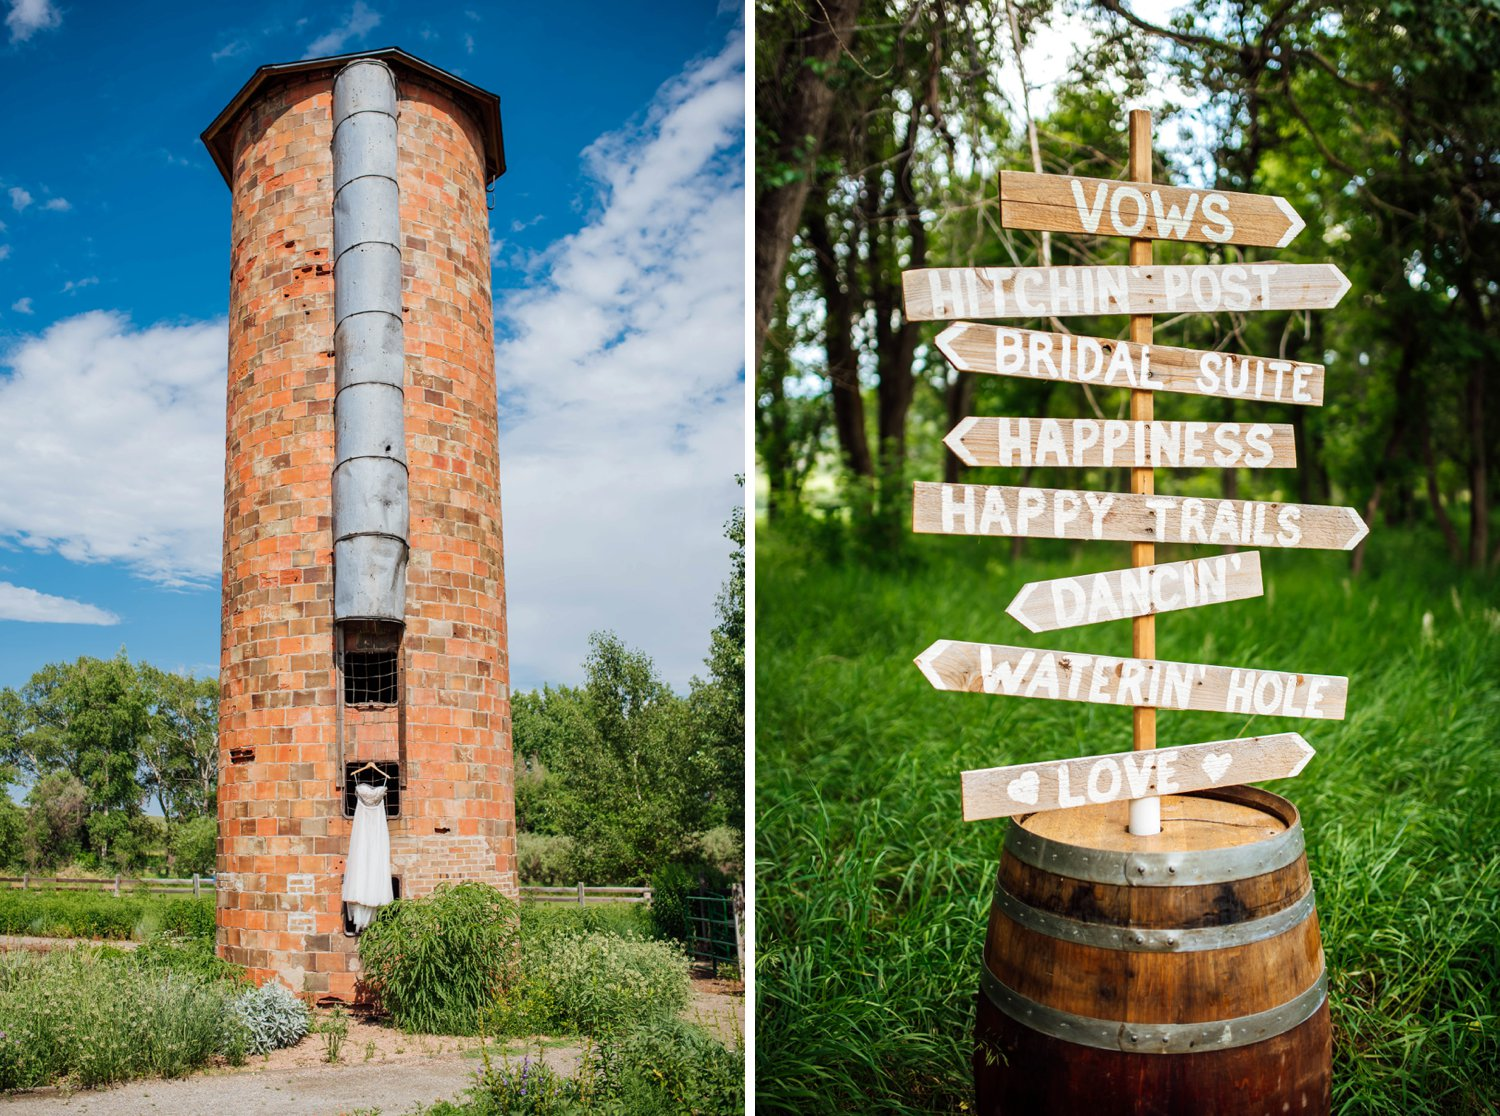 I love the Denver Botanic Gardens at Chatfield! This brick tower is beautiful. Also, the wooden signs in the barrel is such a cute idea to direct guests!Photo by Maddie Mae Photography